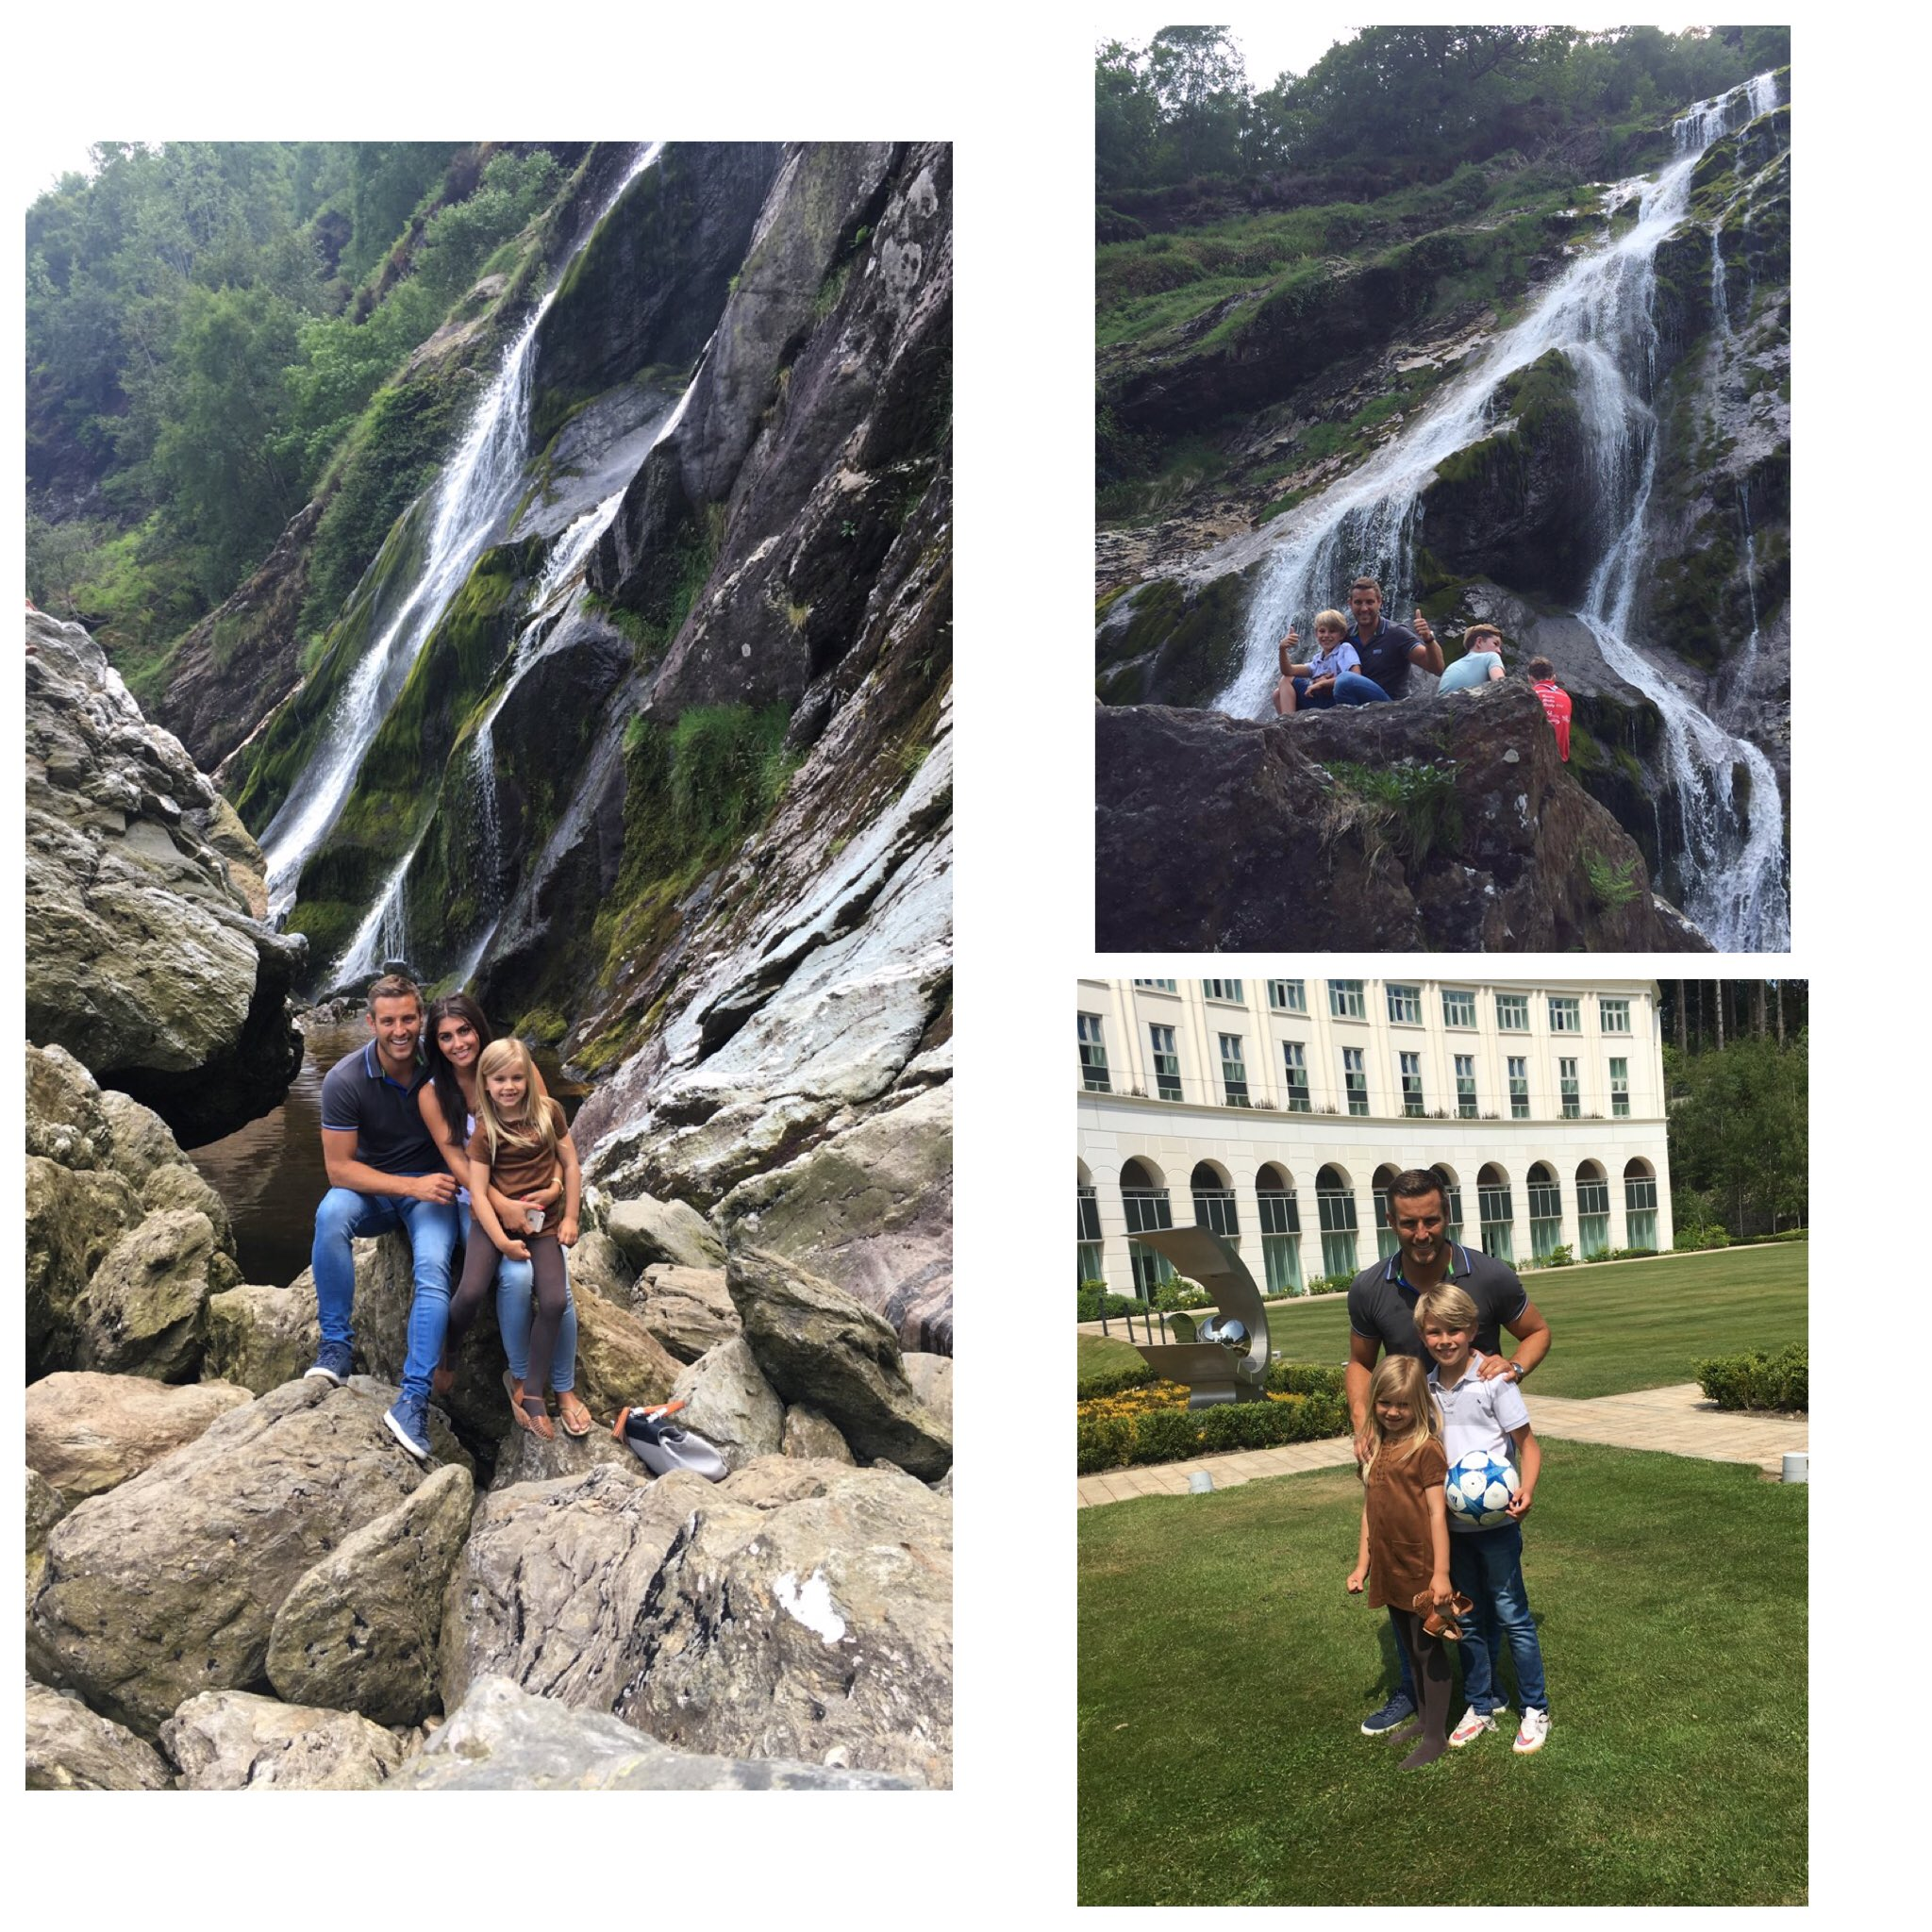 Had a lovely day with my babies today! #PowersCourt ❤️ @powerscourtHtl https://t.co/bB8uqPjgEu